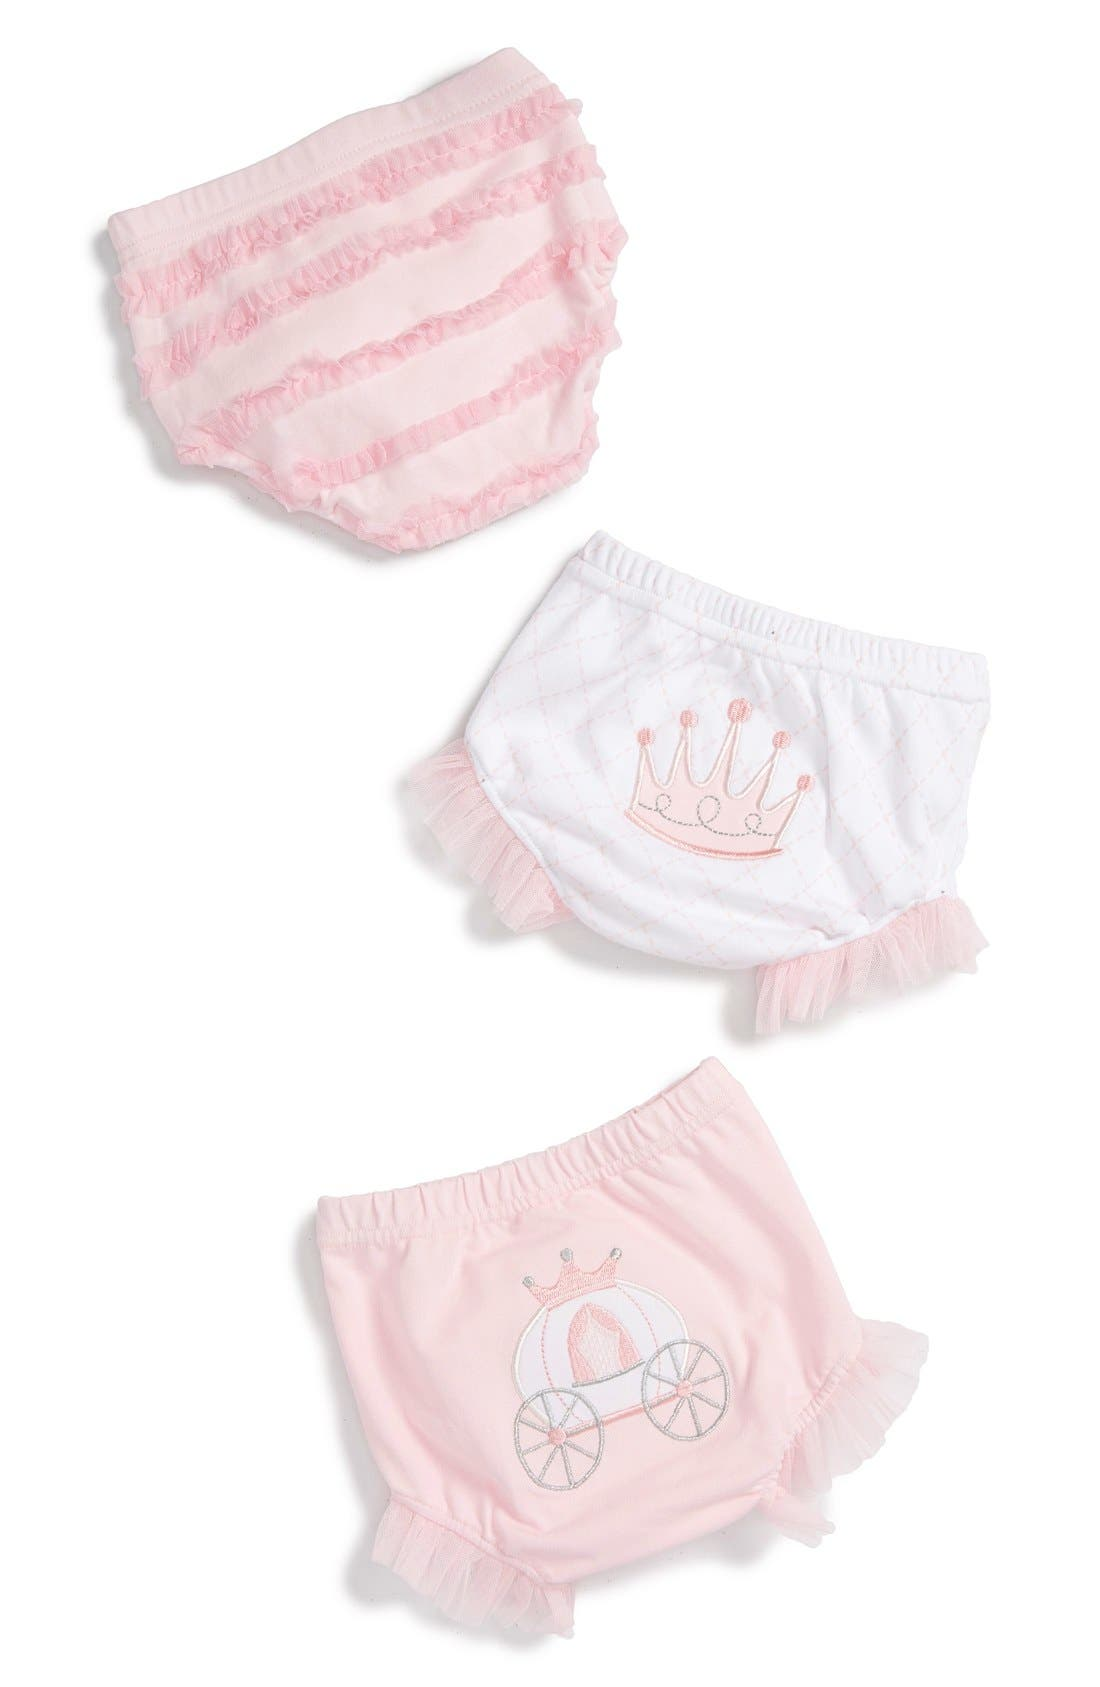 Baby Aspen 'Her Royal Hineys' Bloomers (3-Pack) (Baby Girls)